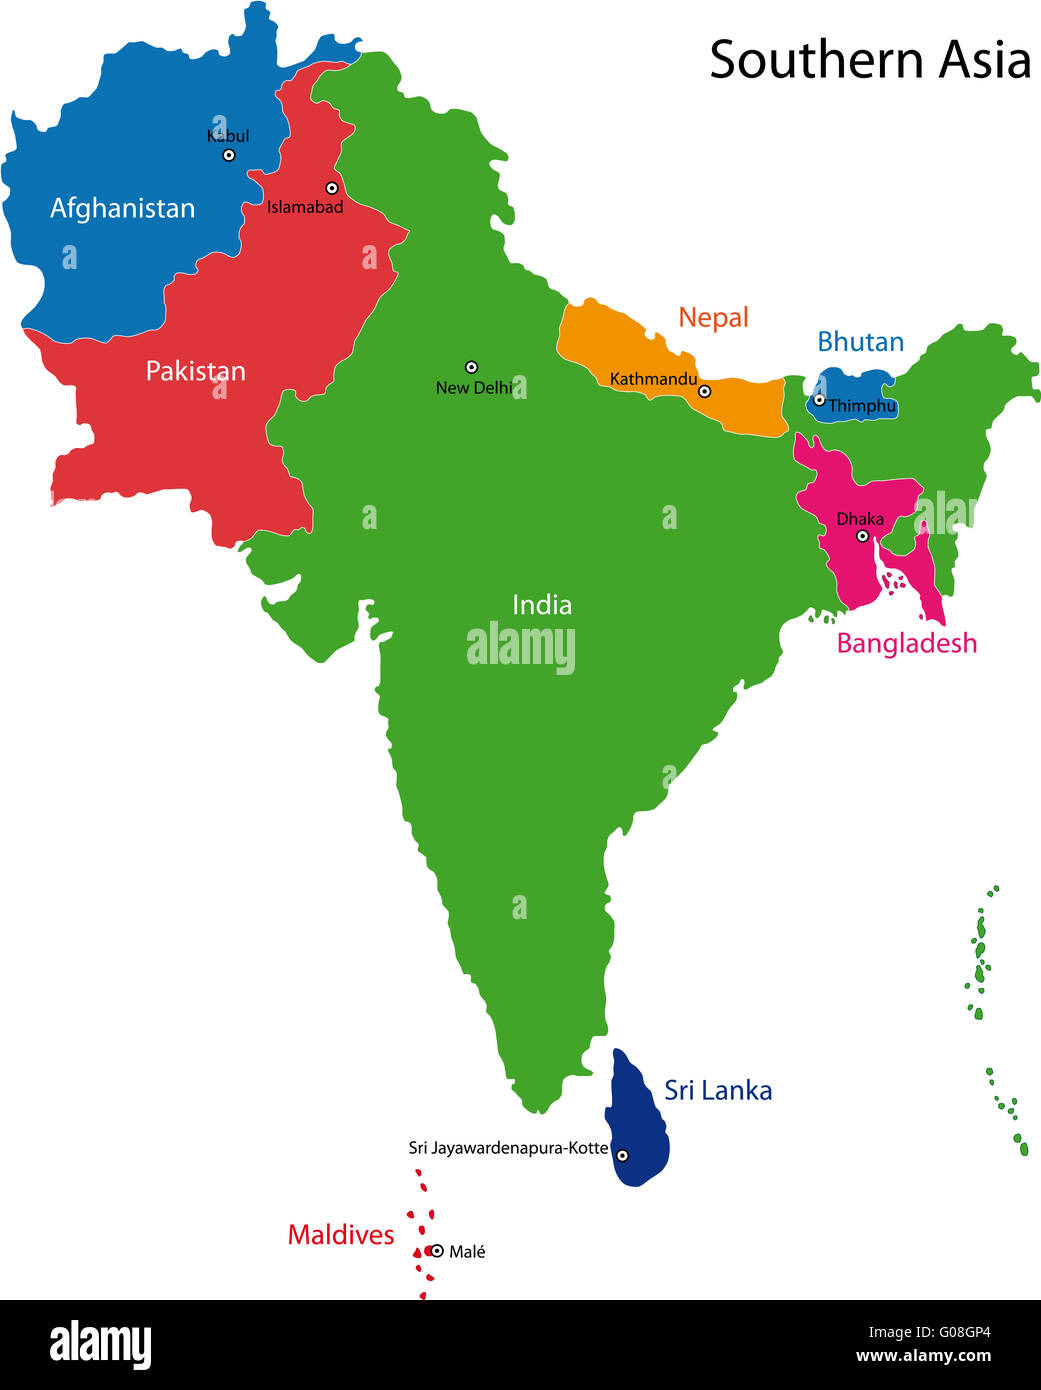 Southern Asia map Stock Photo